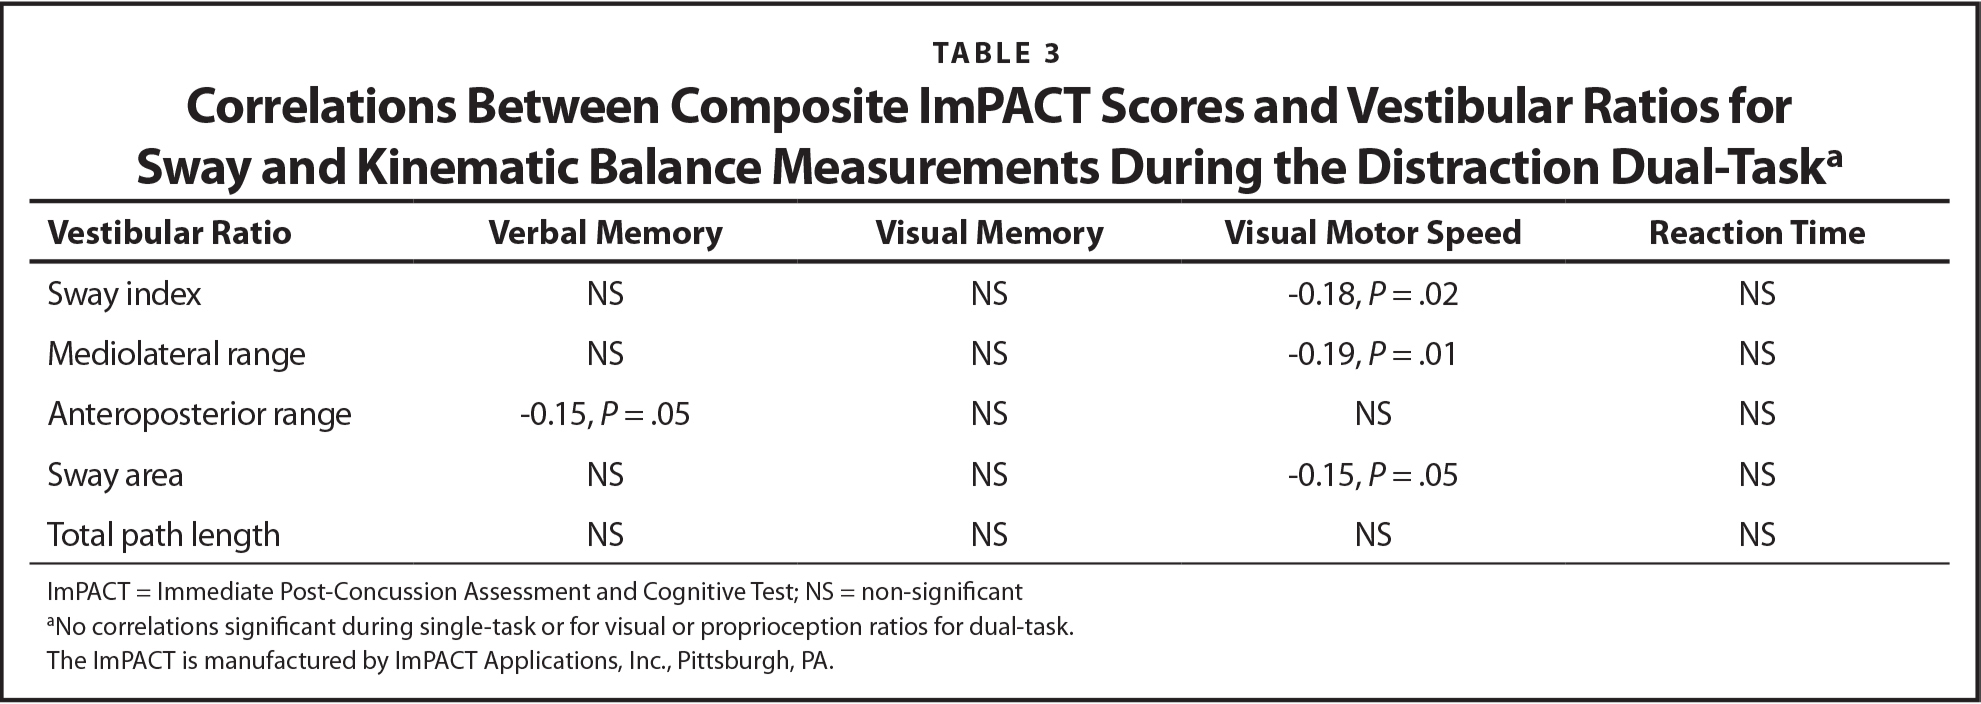 Correlations Between Composite ImPACT Scores and Vestibular Ratios for Sway and Kinematic Balance Measurements During the Distraction Dual-Taska